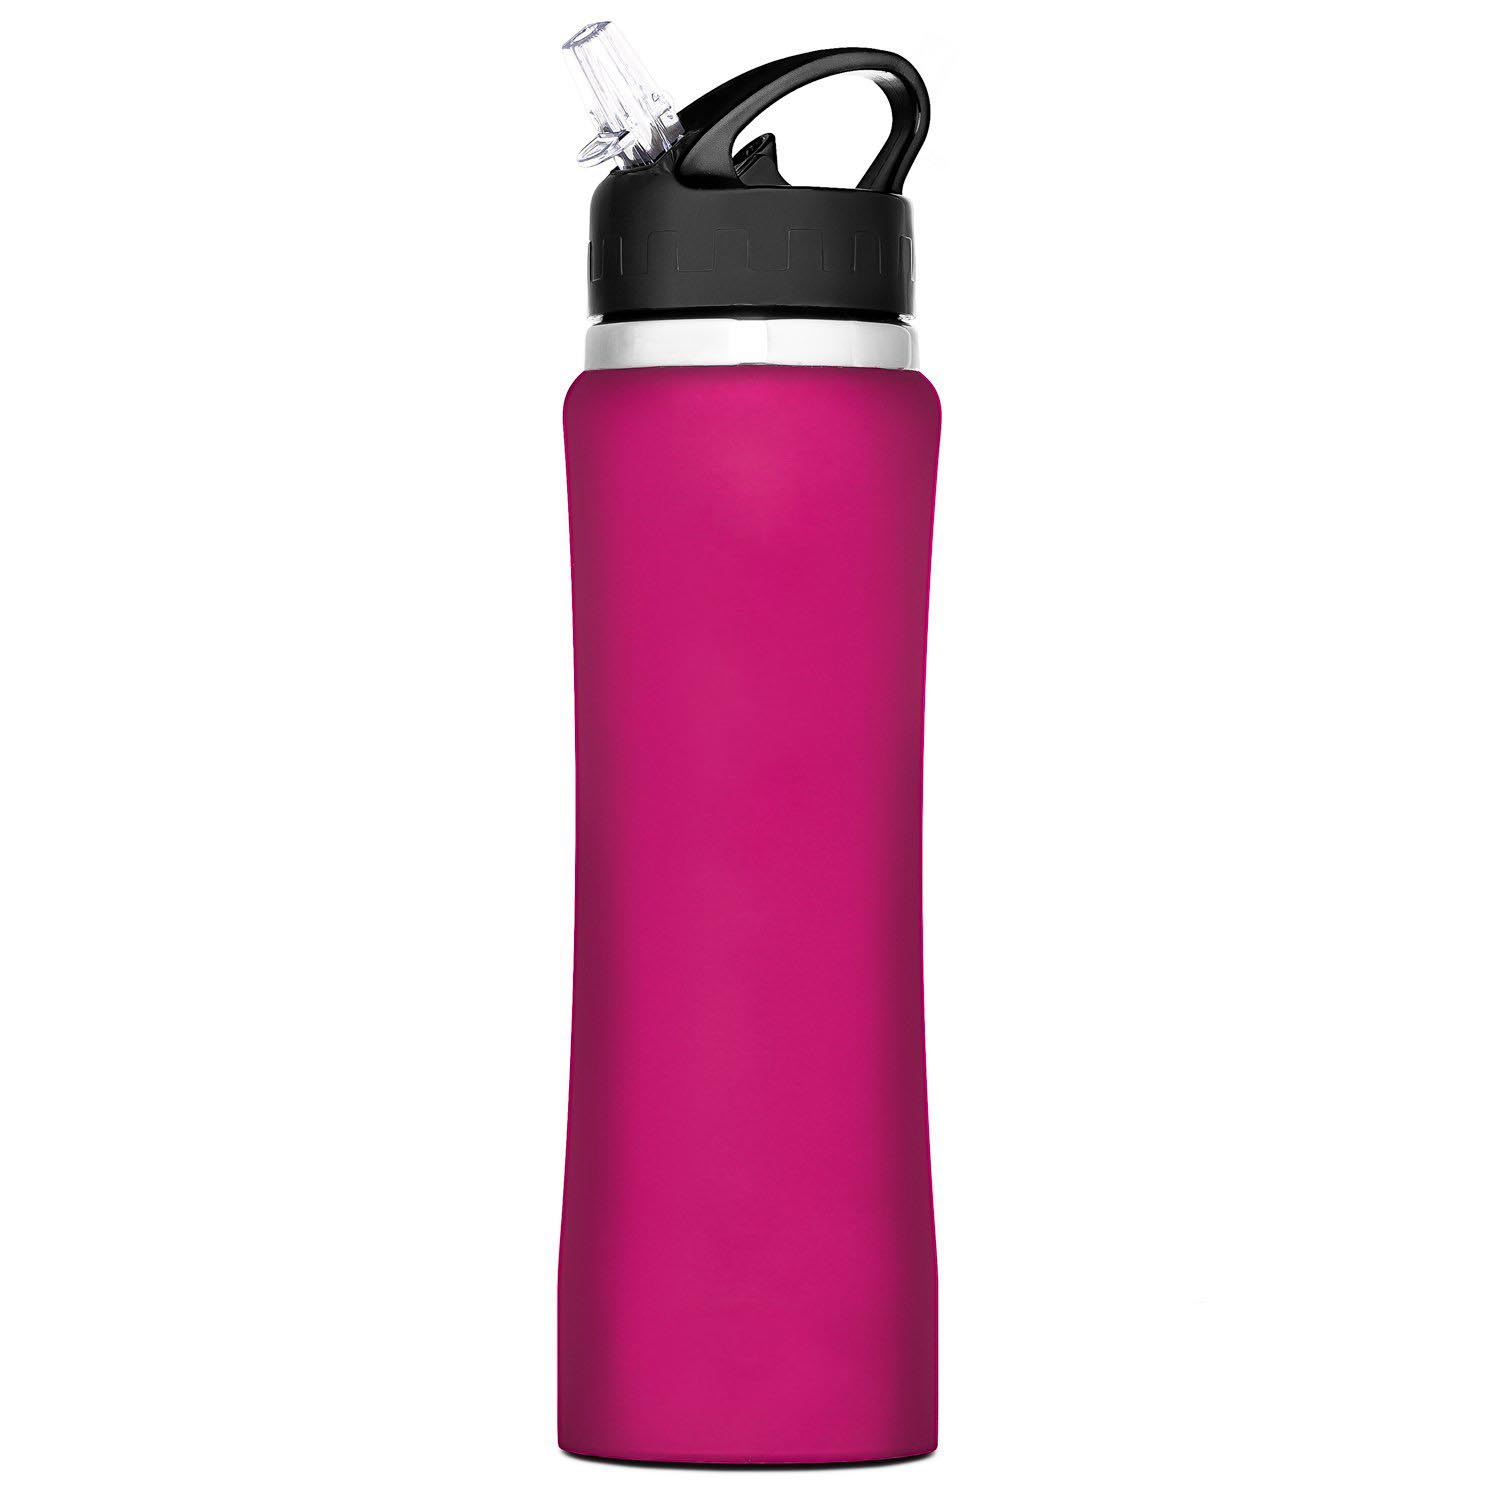 ZC-HD-C Stainless Steel Insulated Water Bottle with flip straw and sweat-proof rubber coating. This